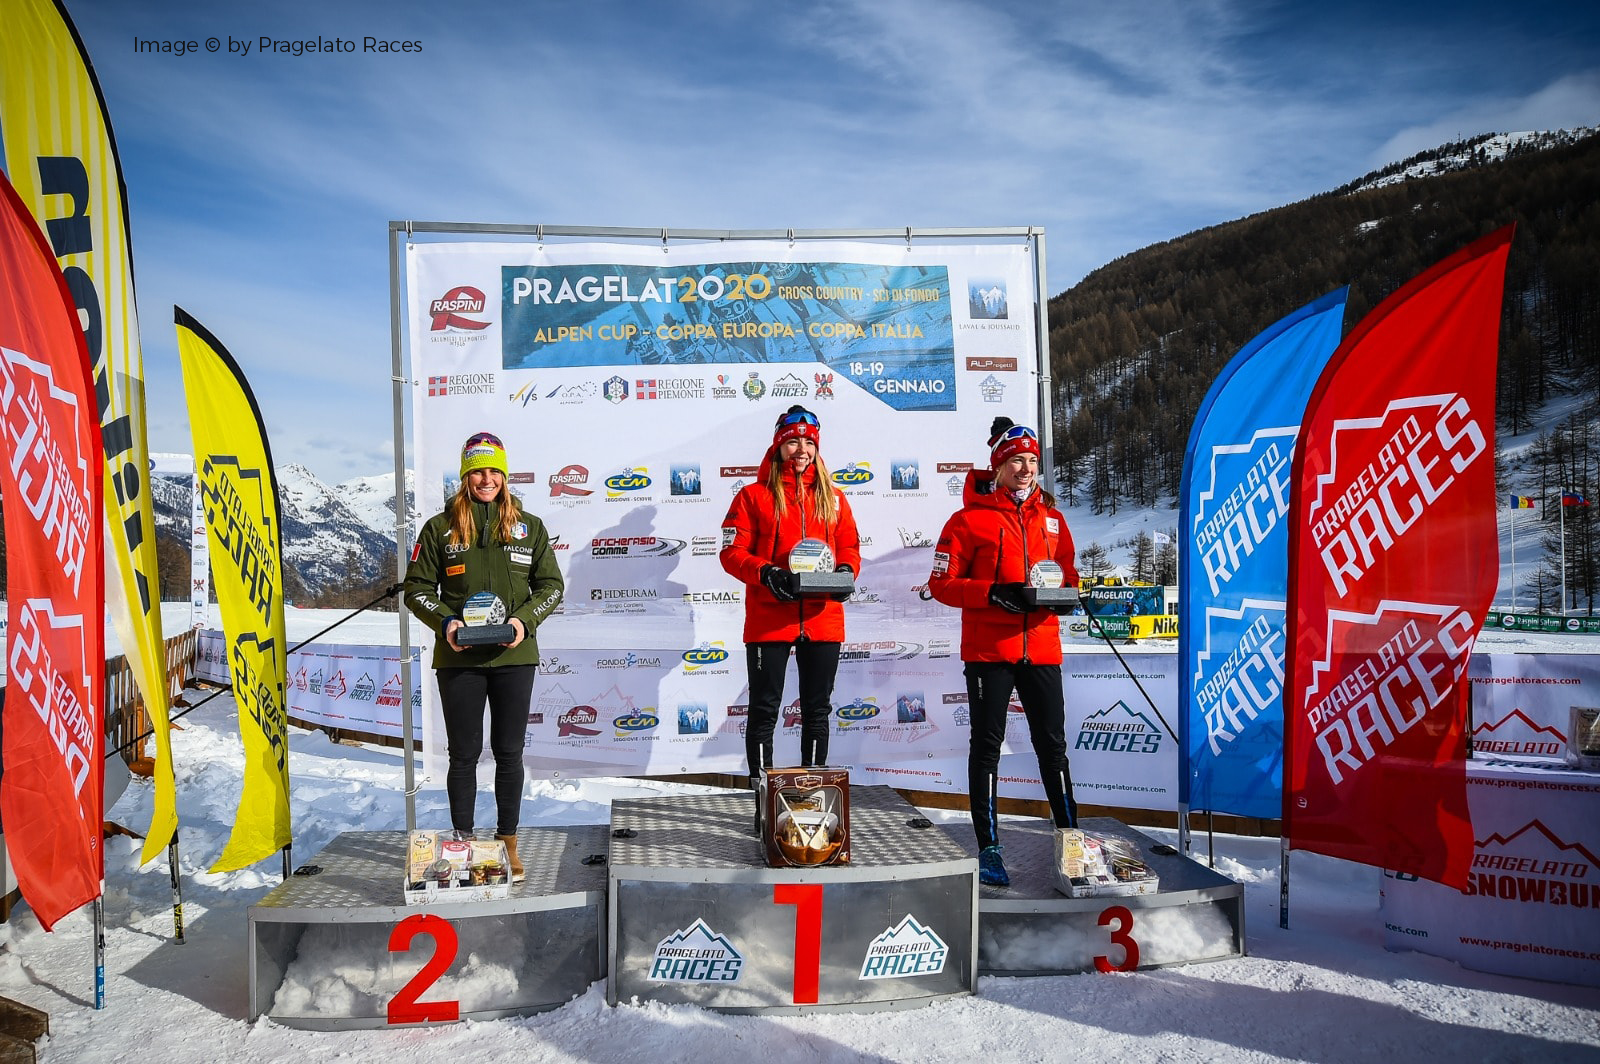 Image © by Pragelato Races